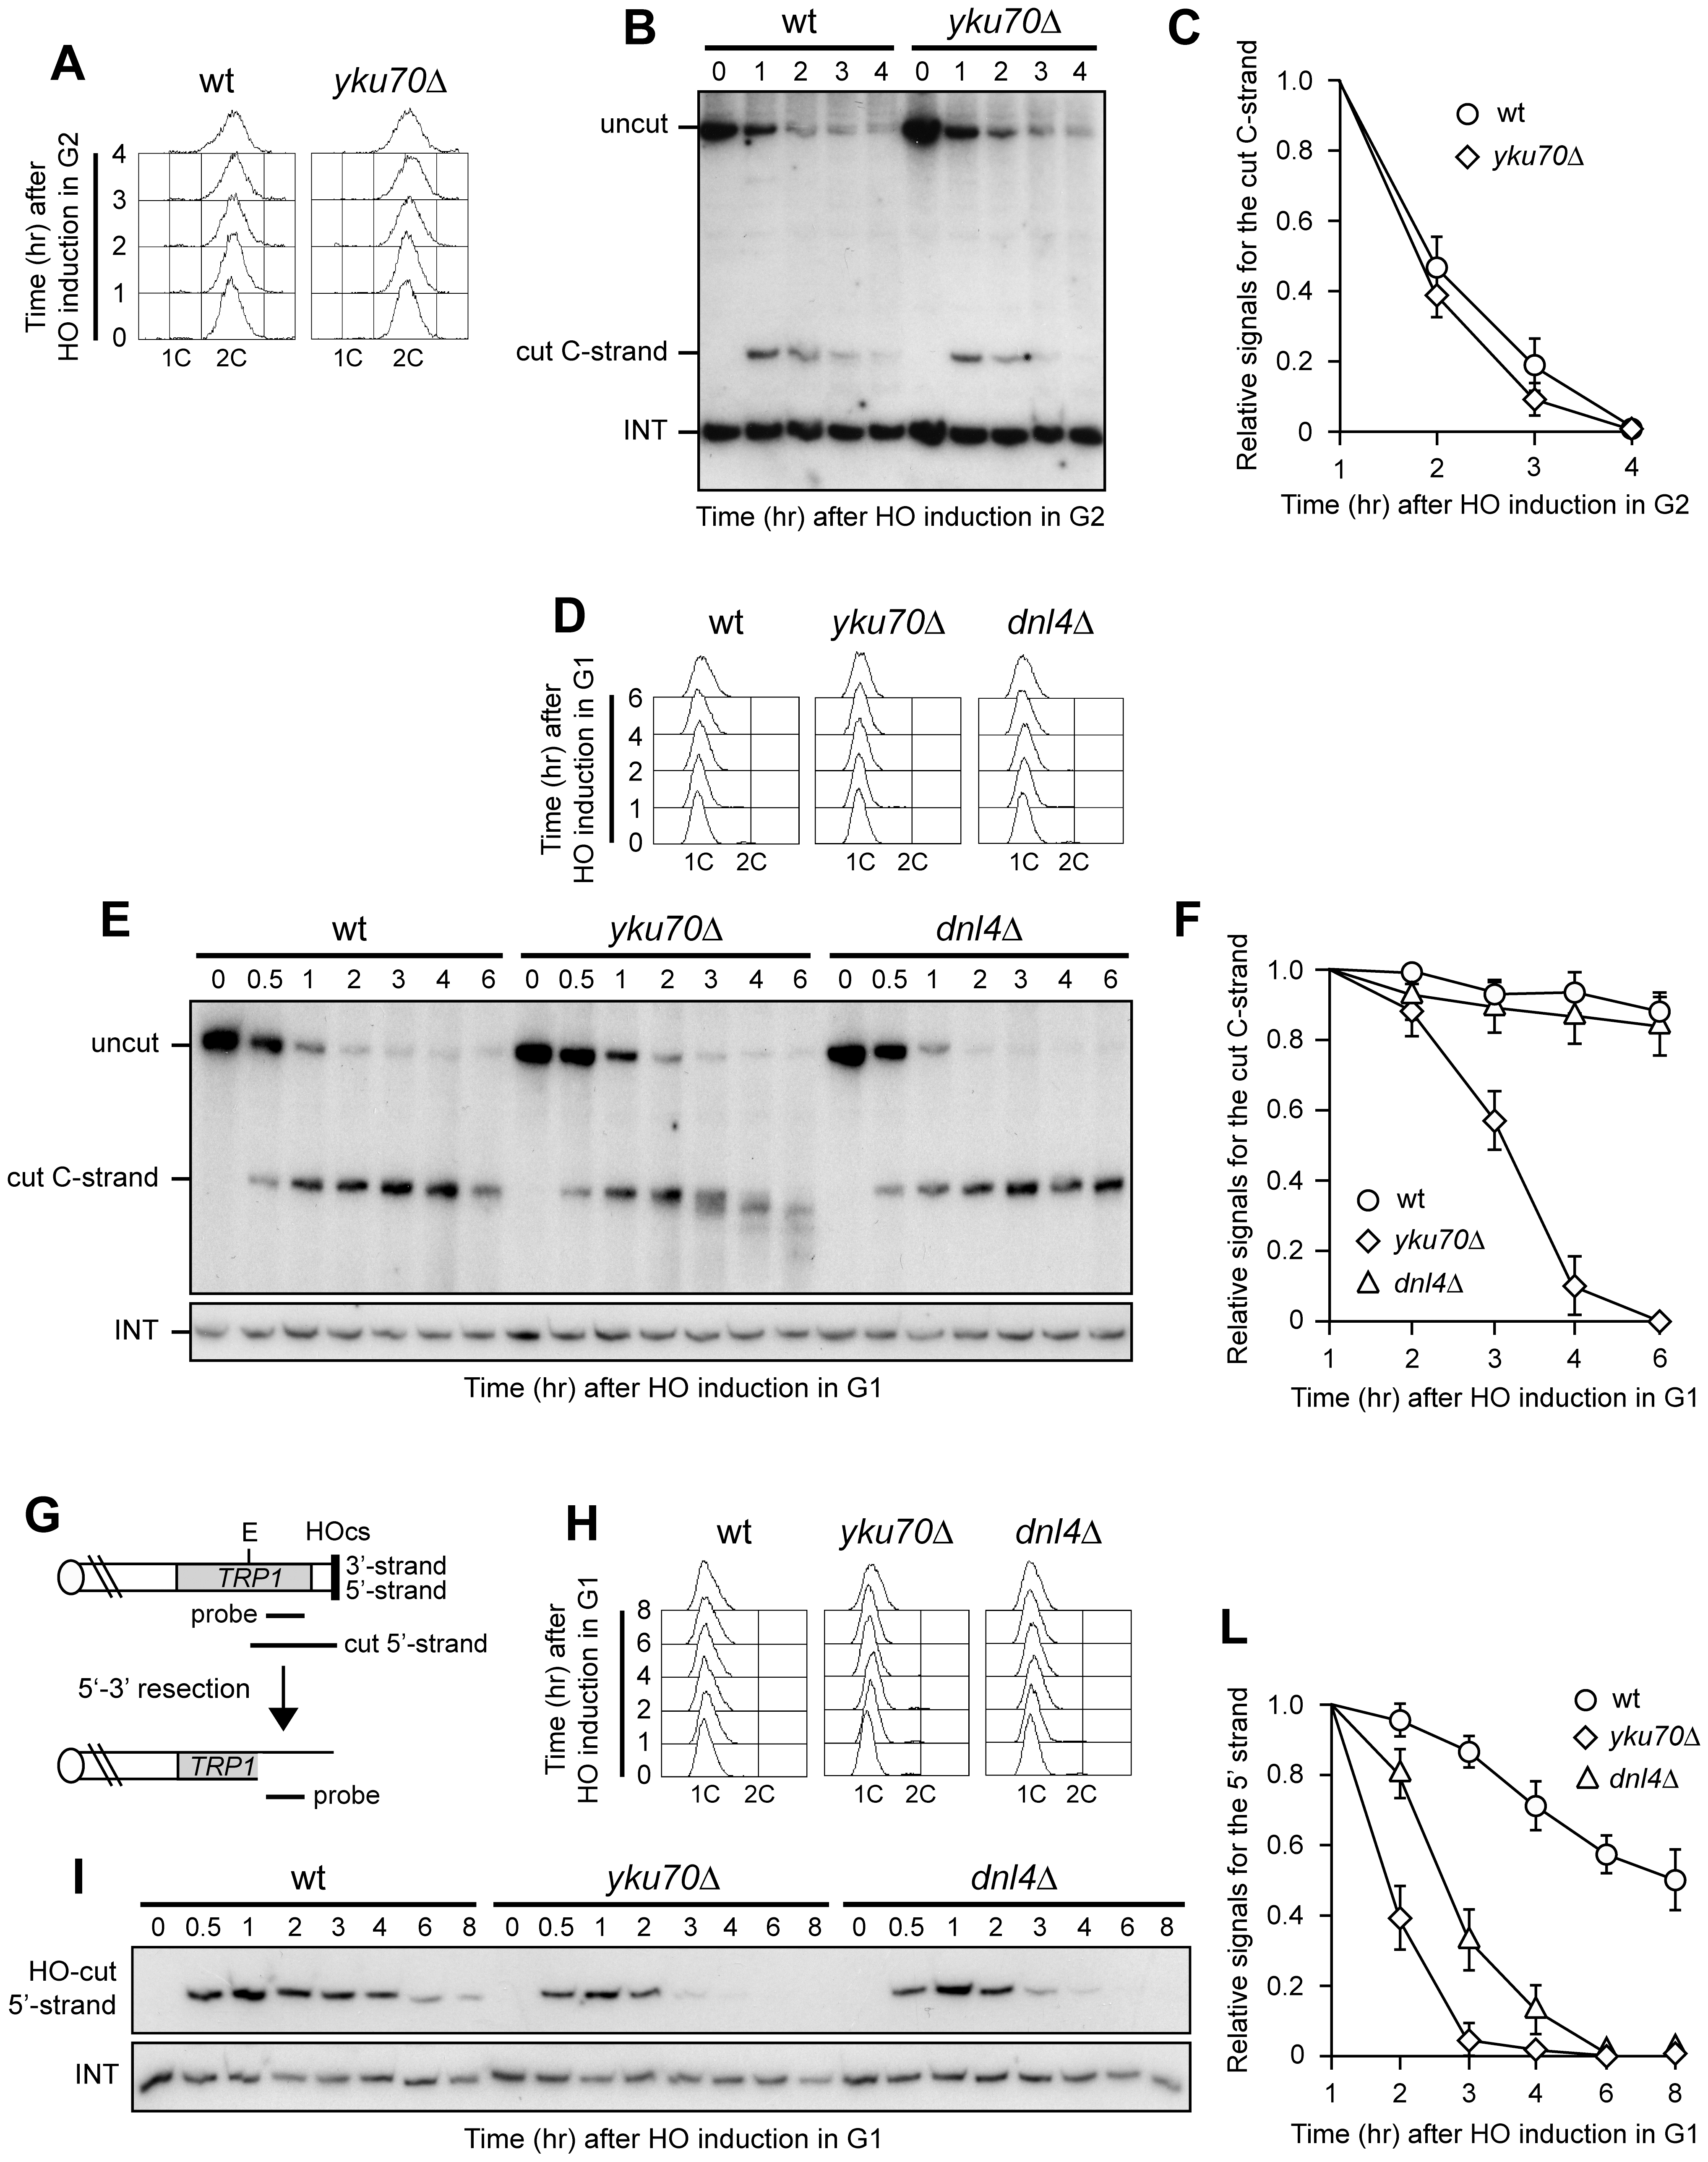 Yku inhibits resection at a de novo telomere specifically in G1.